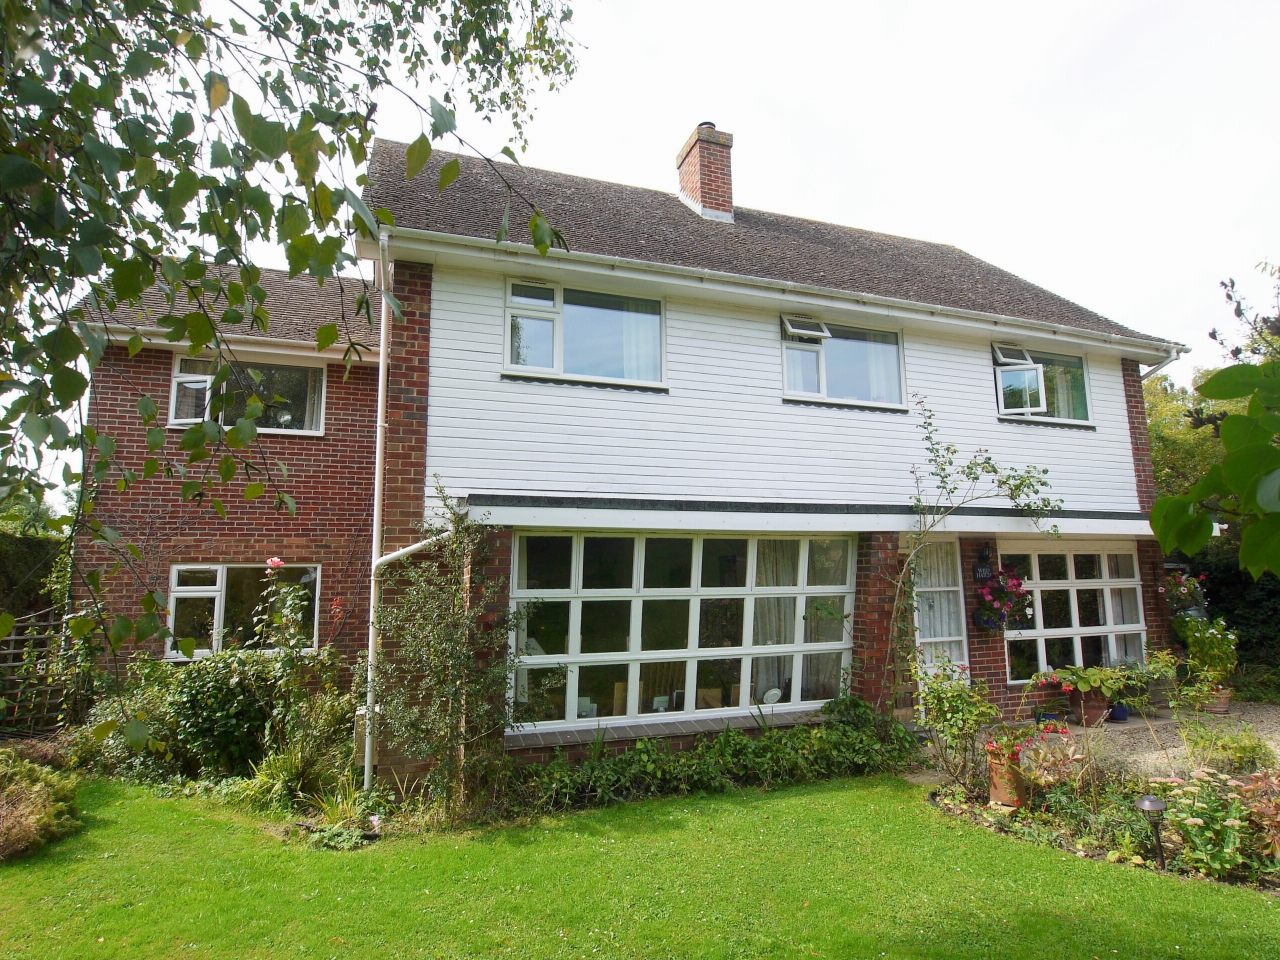 4 bedroom detached house Sold in Tonbridge - Photograph 12